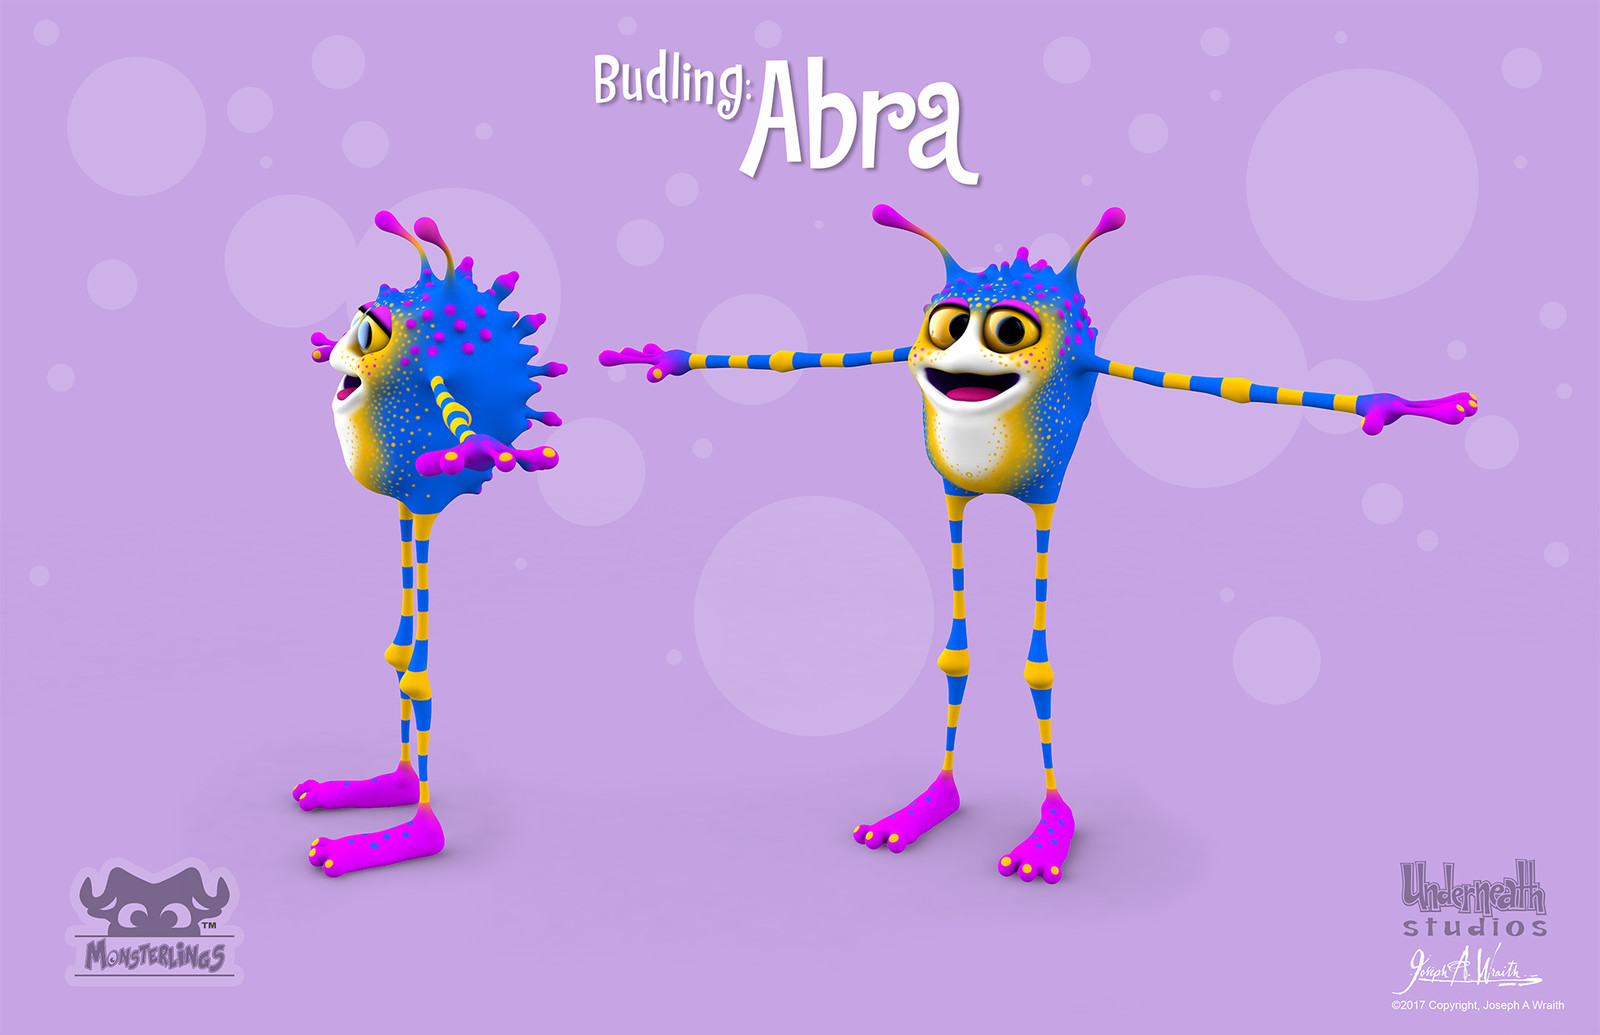 Monsterlings: Budling - Abra